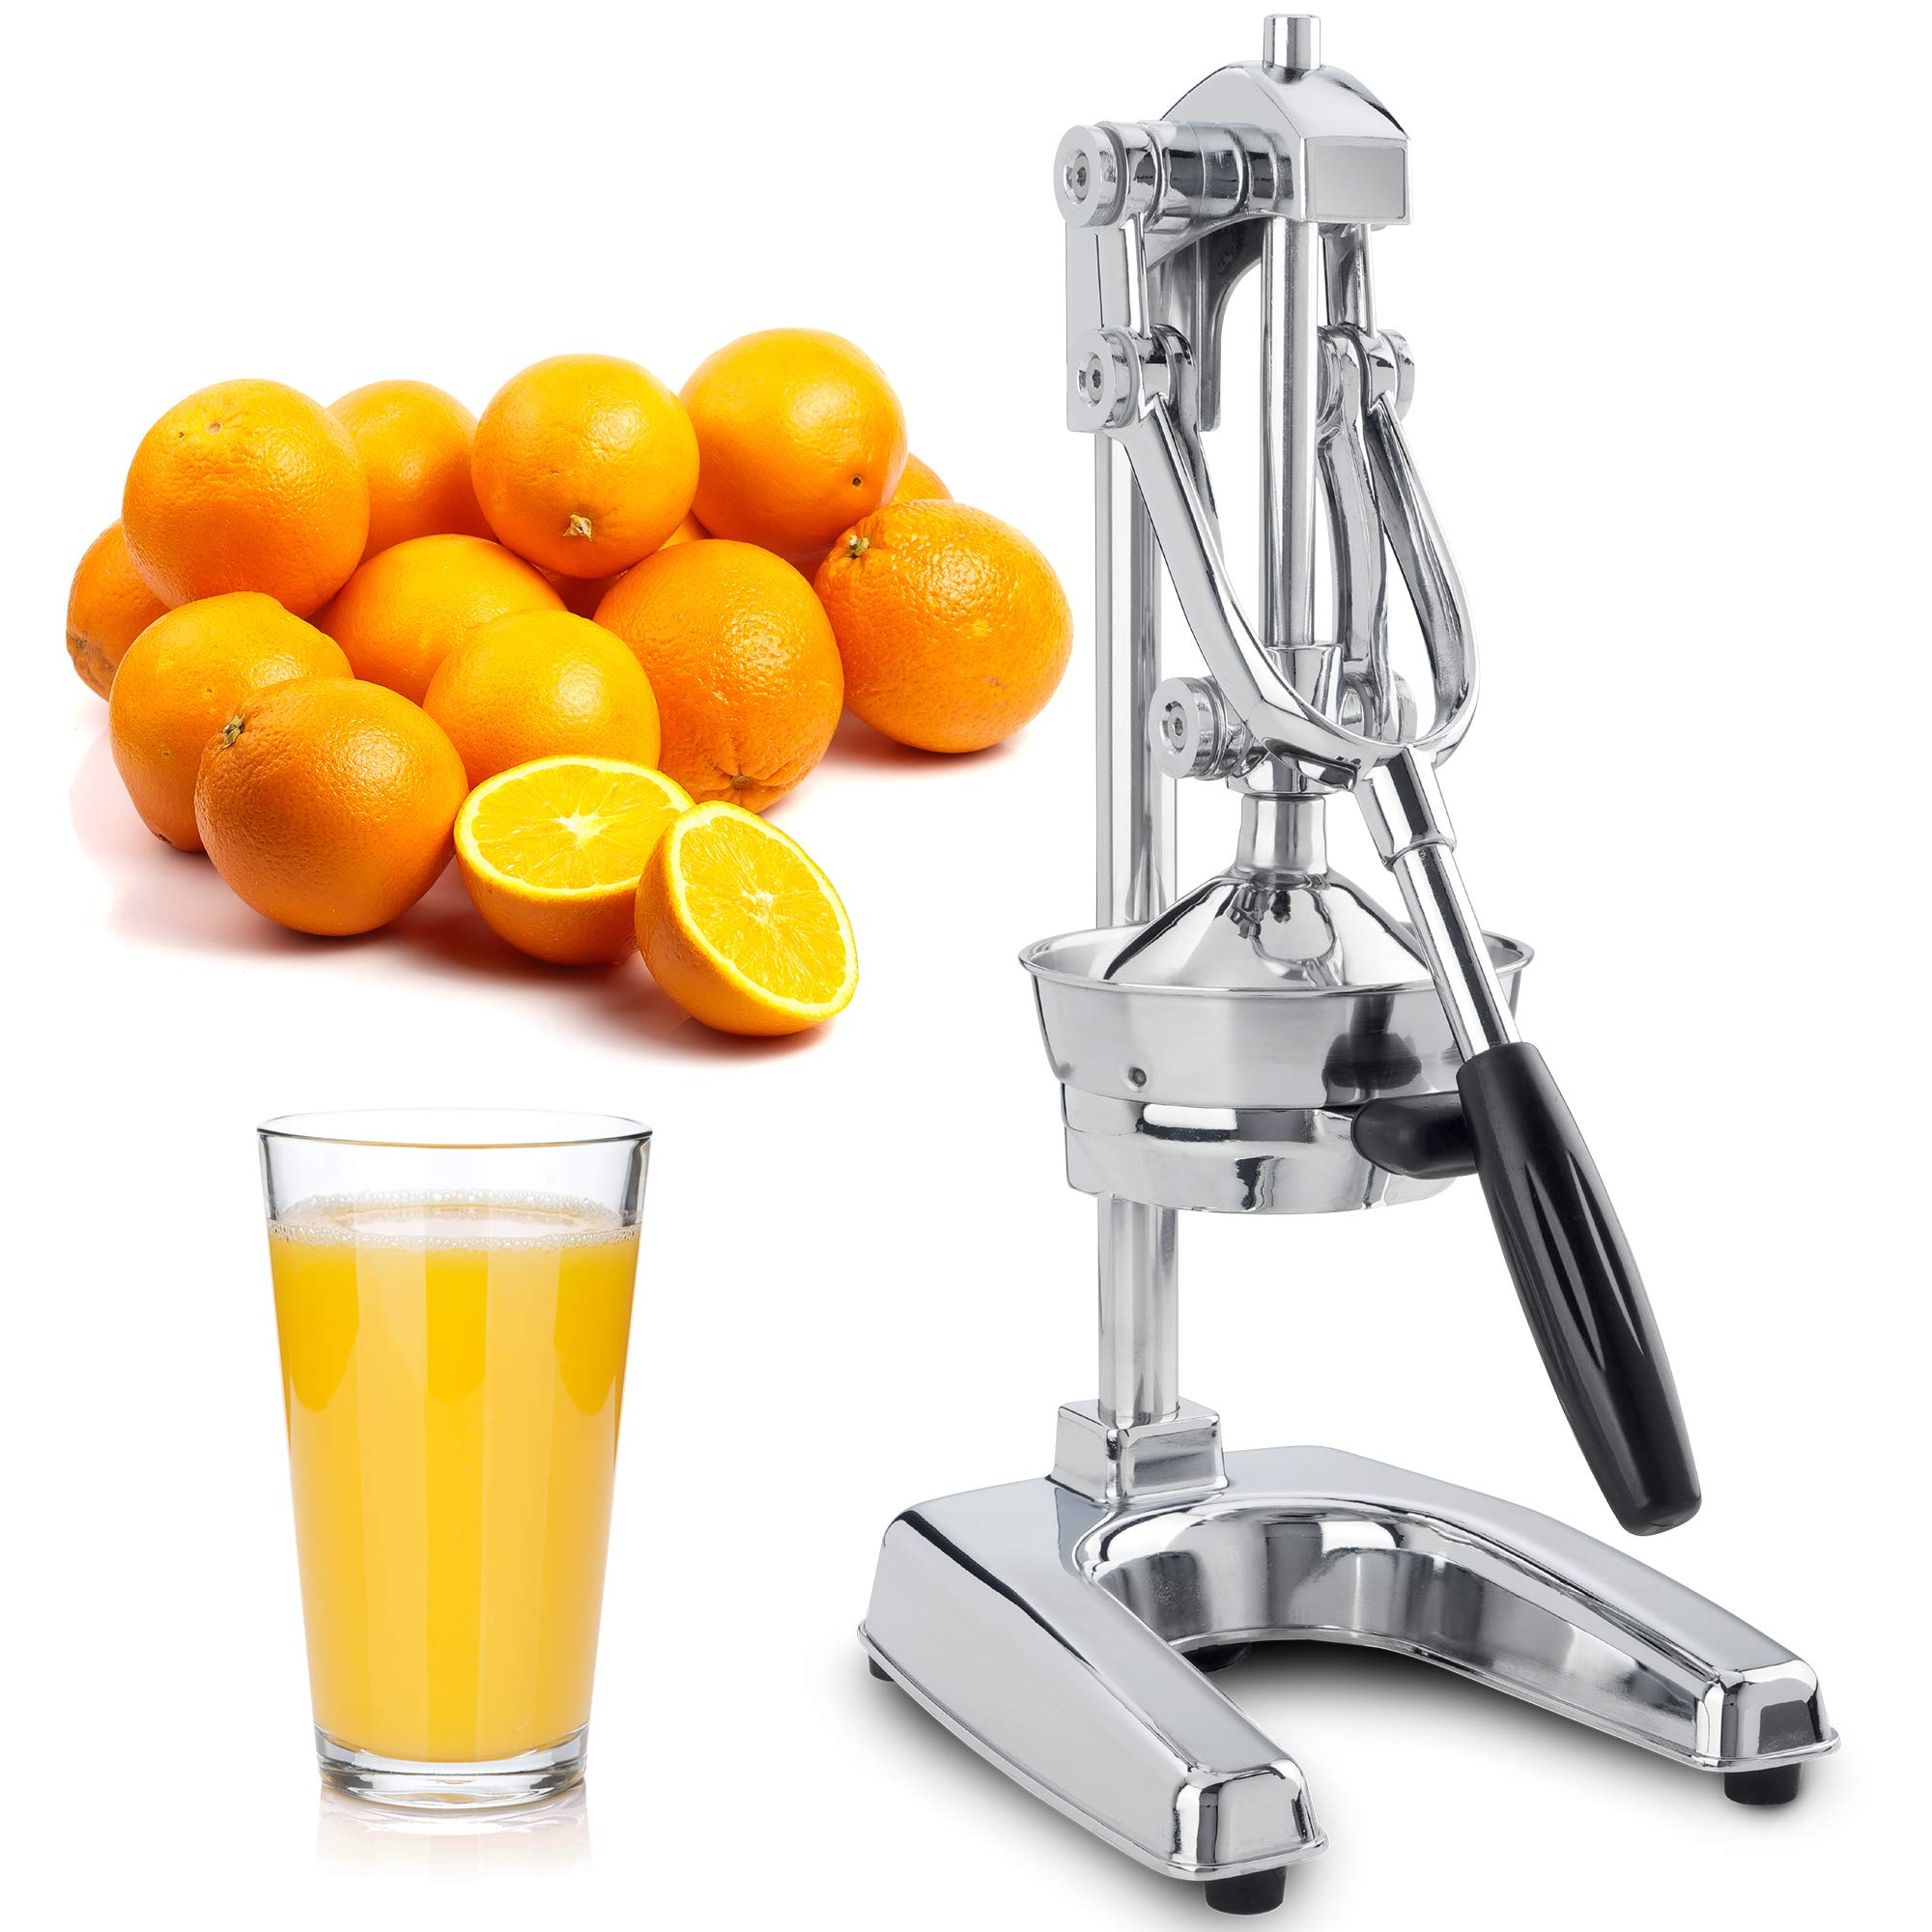 Zulay Professional Citrus Juicer - Chrome Finish Manual Citrus Press and Orange Squeezer - Metal Lemon Squeezer - Extra Tall Heavy Duty Manual Orange Juicer and Lime Squeezer Press Stand by Zulay Kitchen